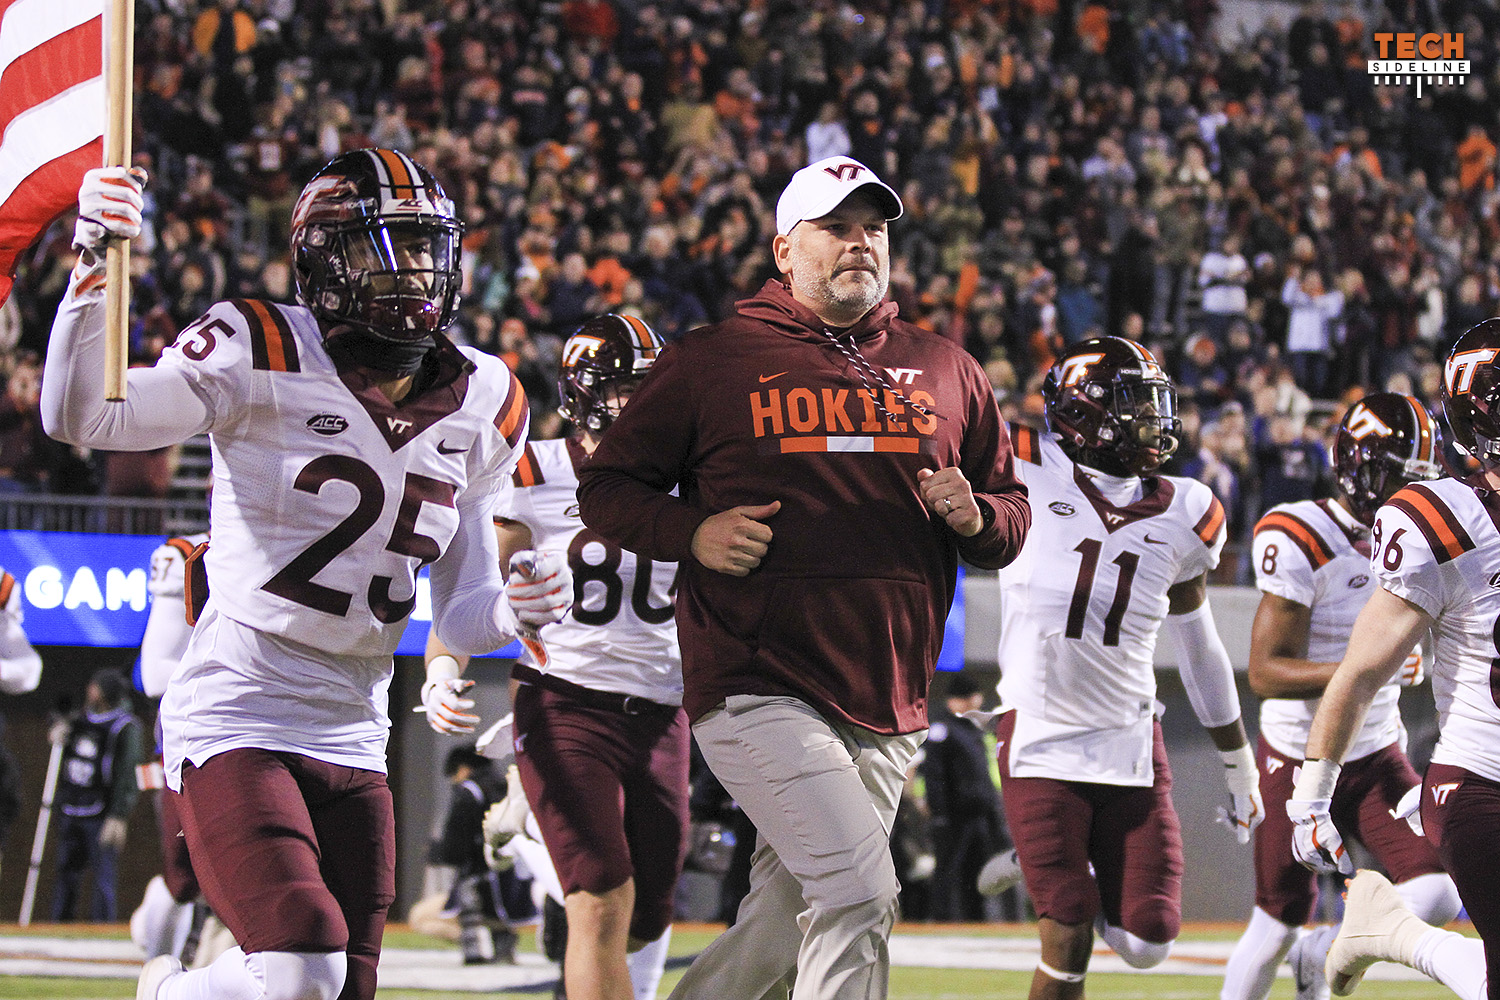 Oklahoma State vs. Virginia Tech location, date, and more